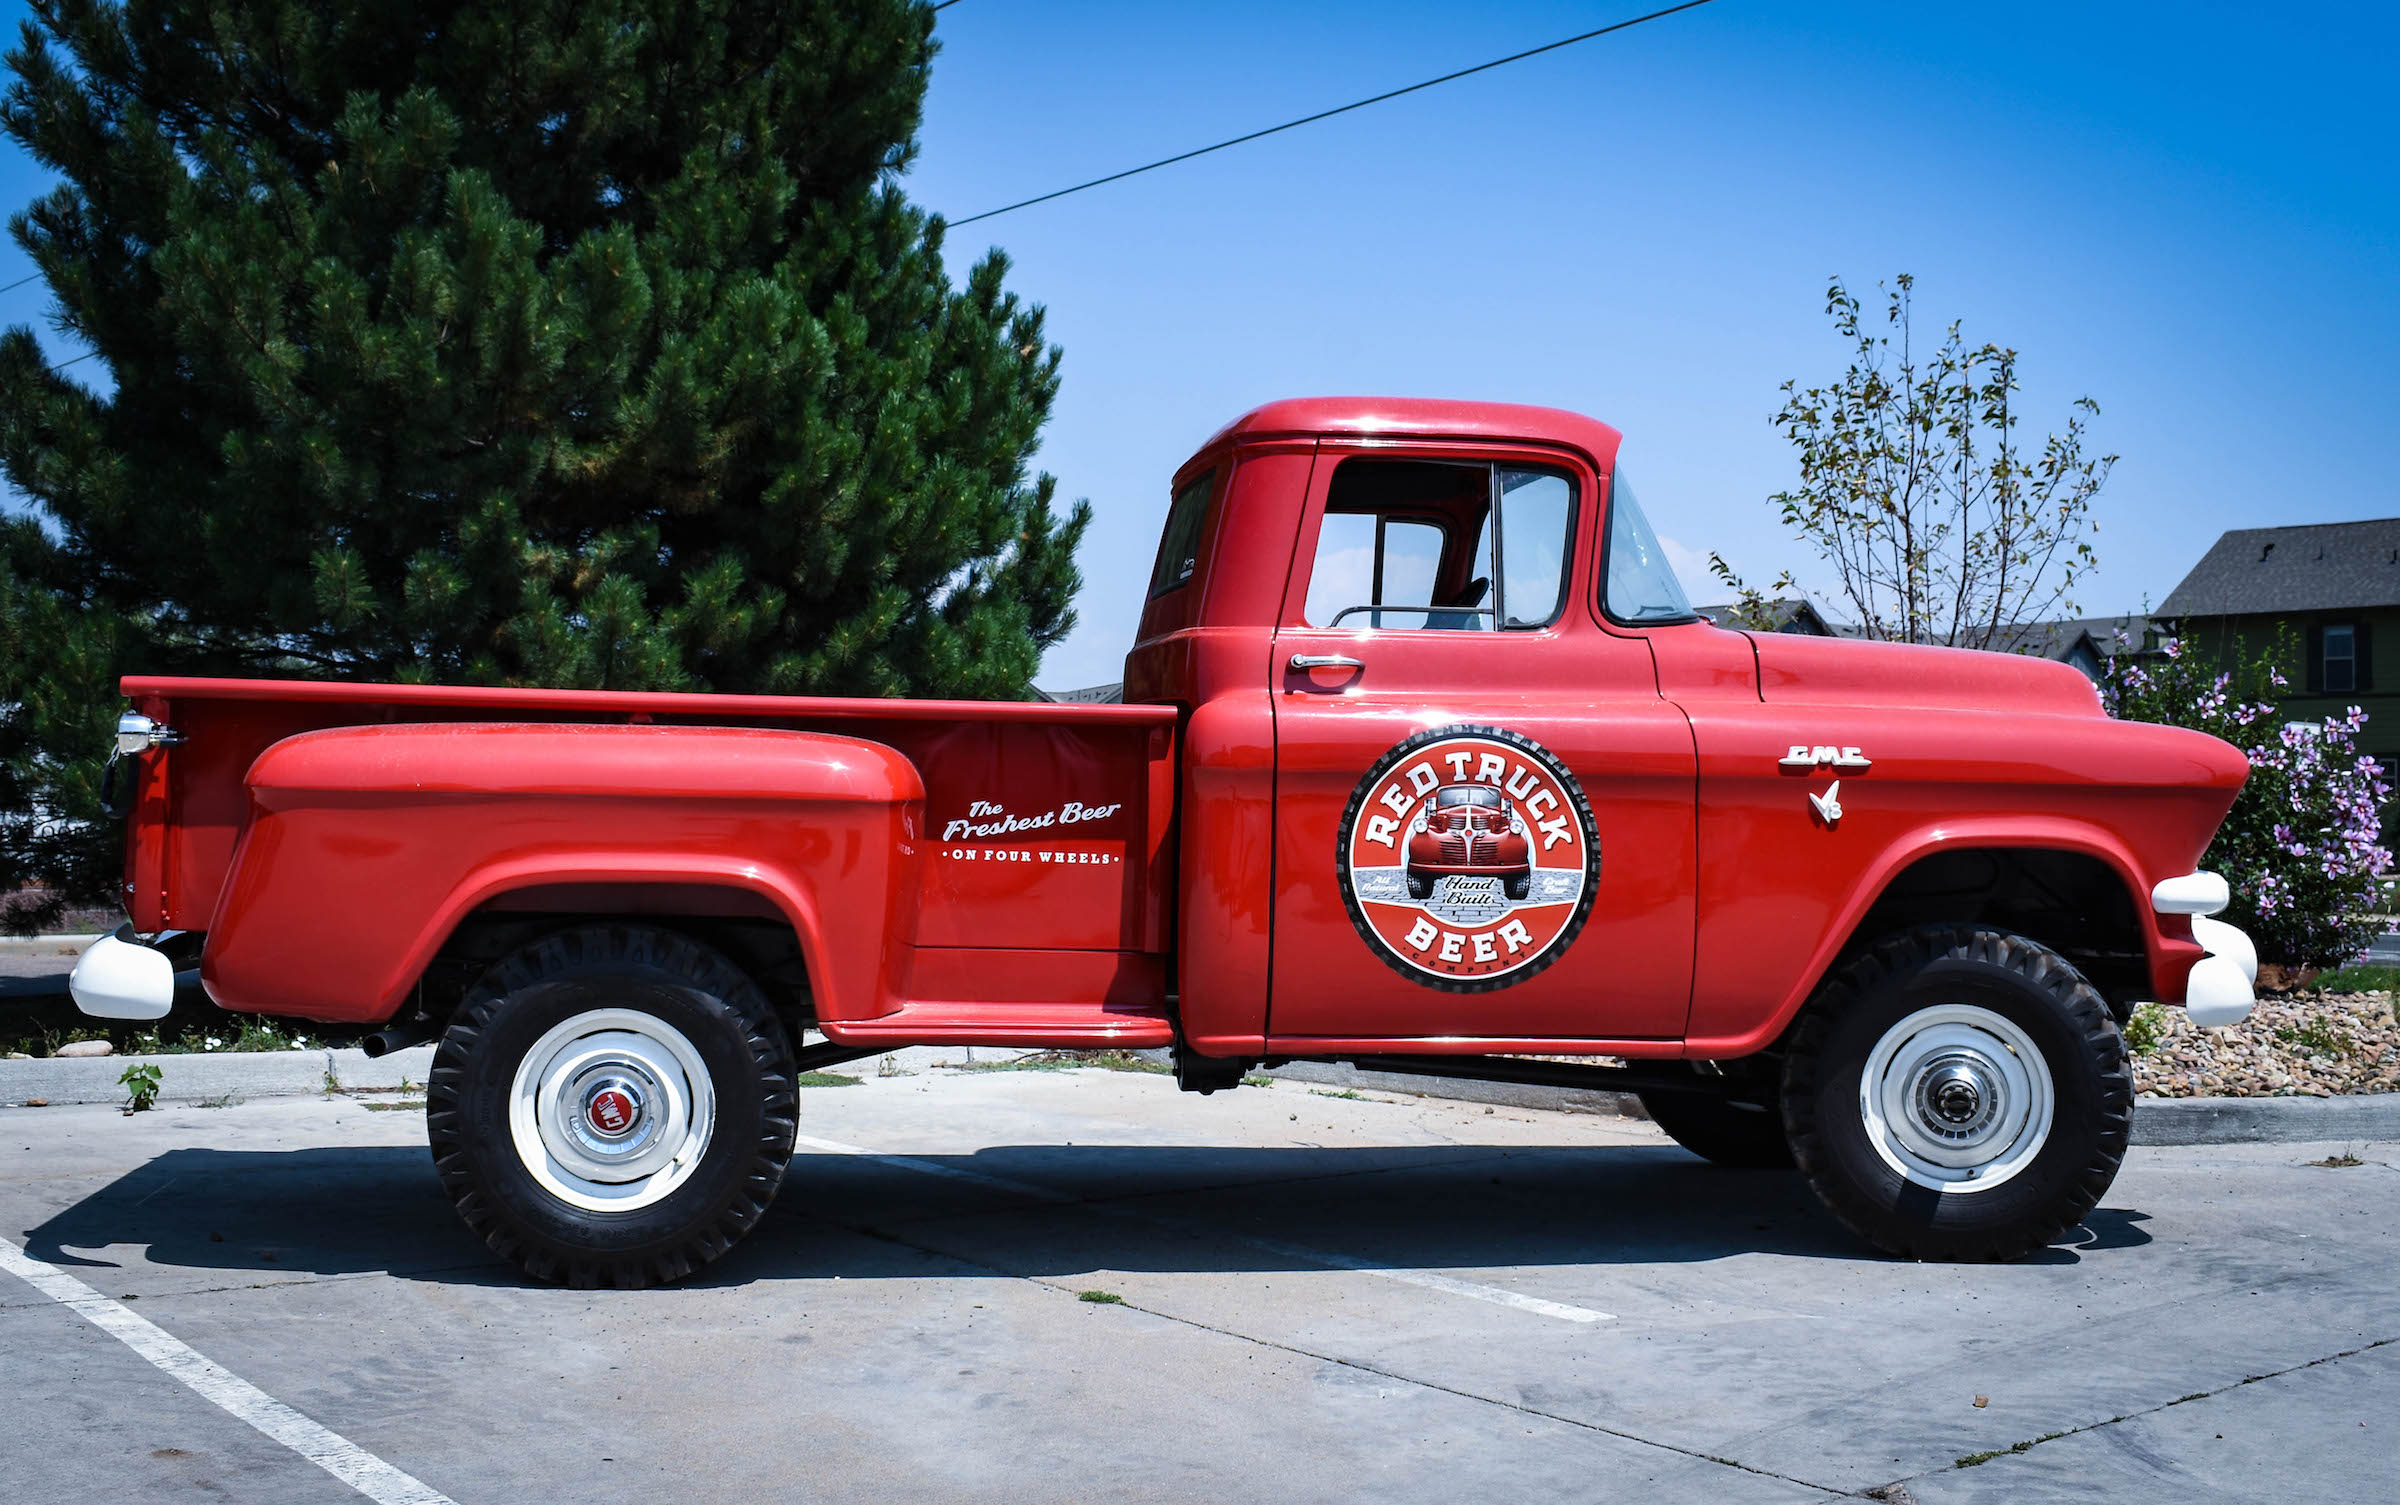 Vancouver's Red Truck Beer Company opens Truck Stop and Brewery in Colorado